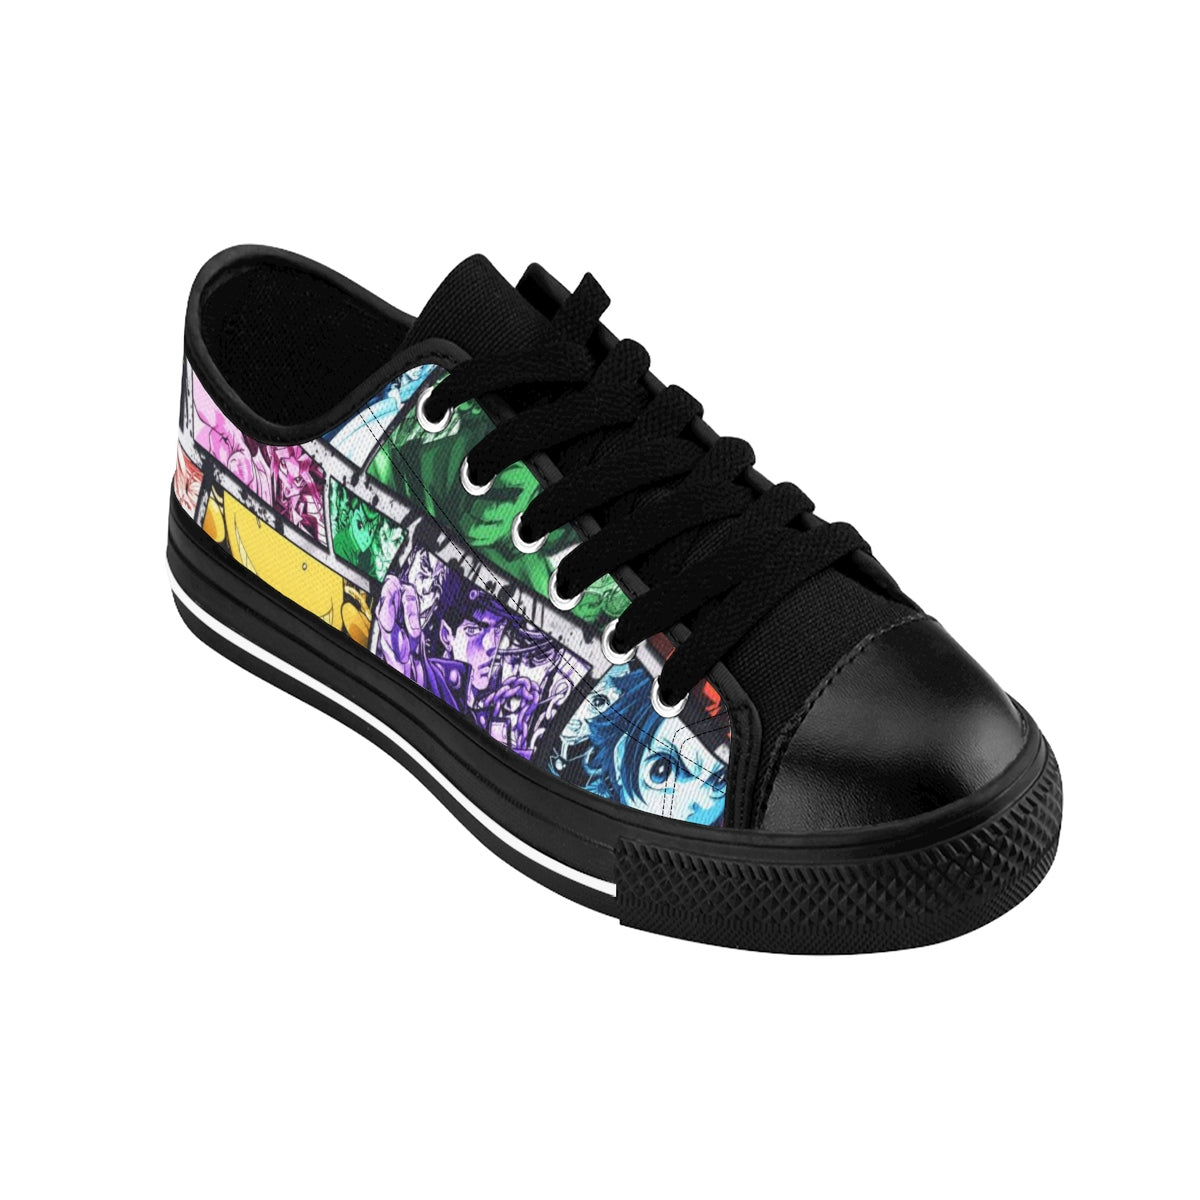 Shonen Jump Inspired Anime Shoes